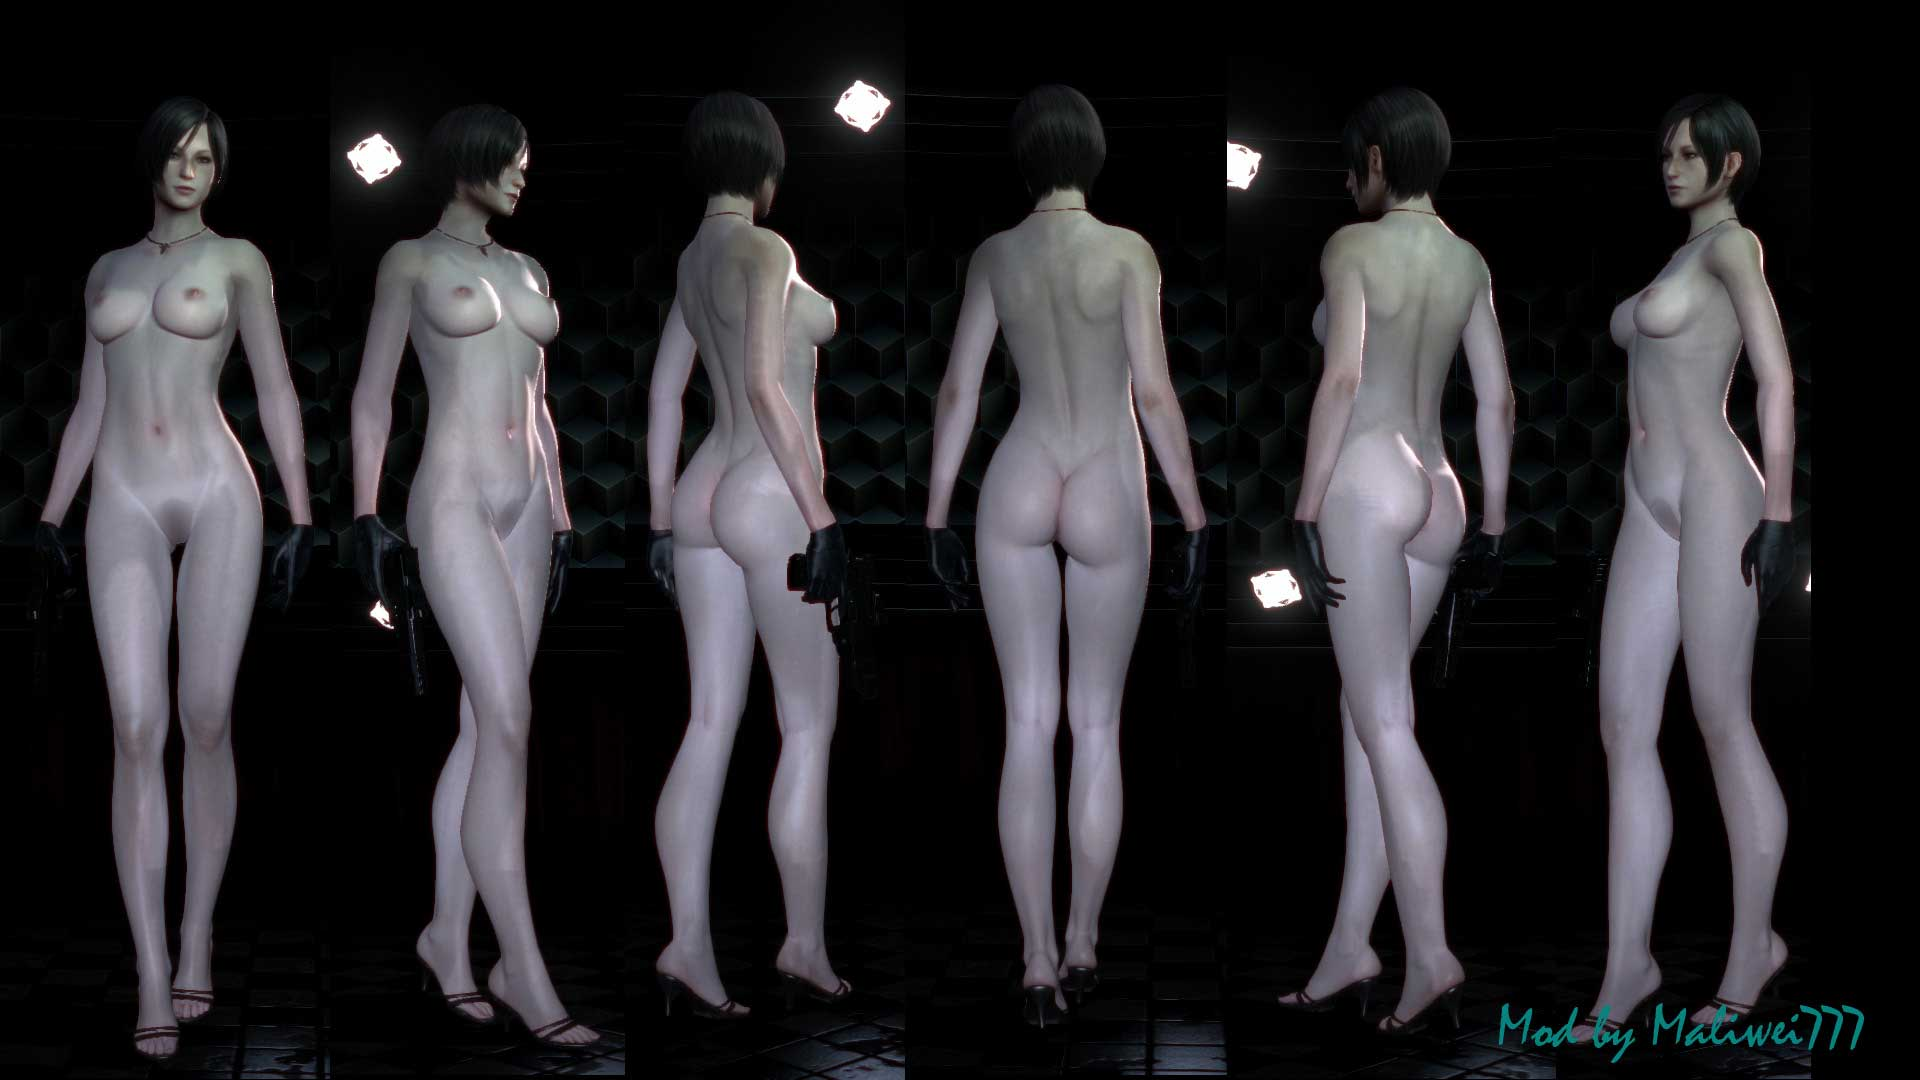 Resident evil 4 nude mods pornos photo